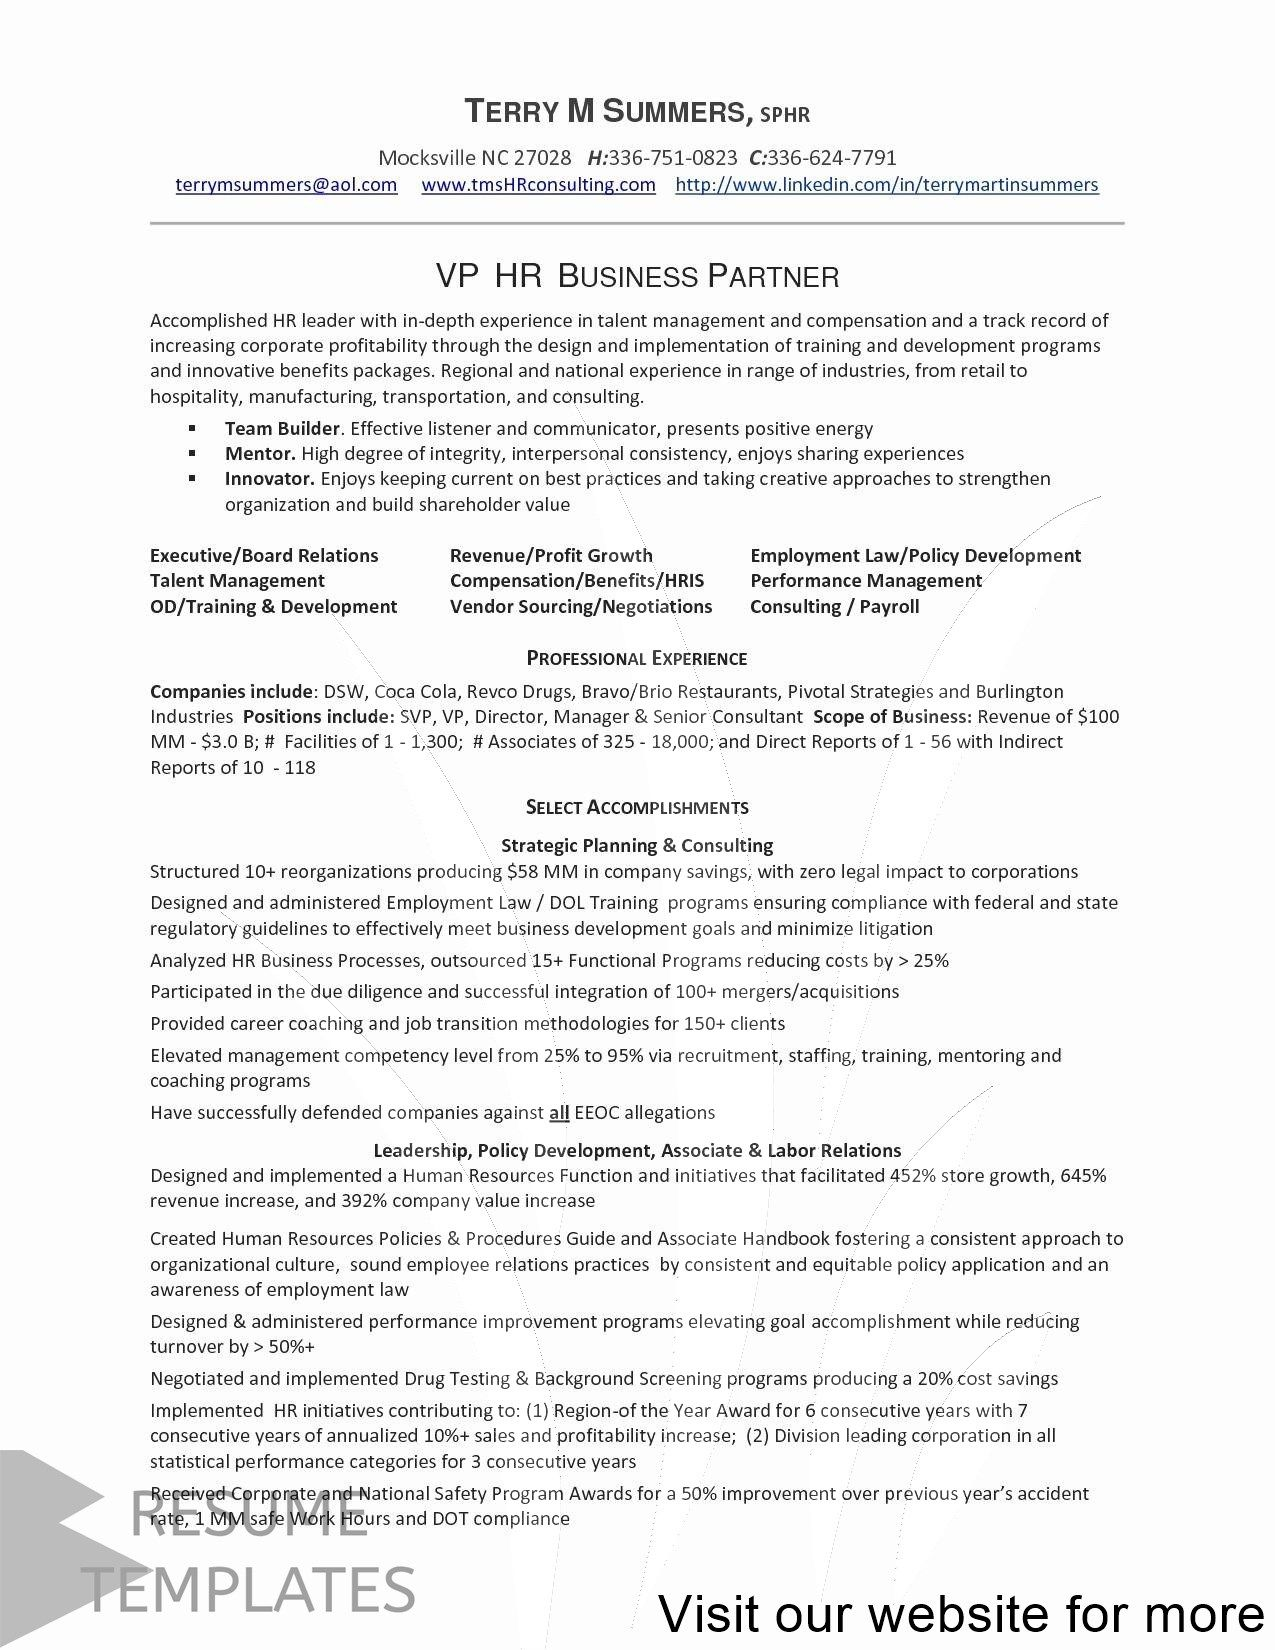 resume builder app free cv maker templates 2019 in 2020 physical therapist job description for corporate lawyer sample doc special skills and qualifications examples